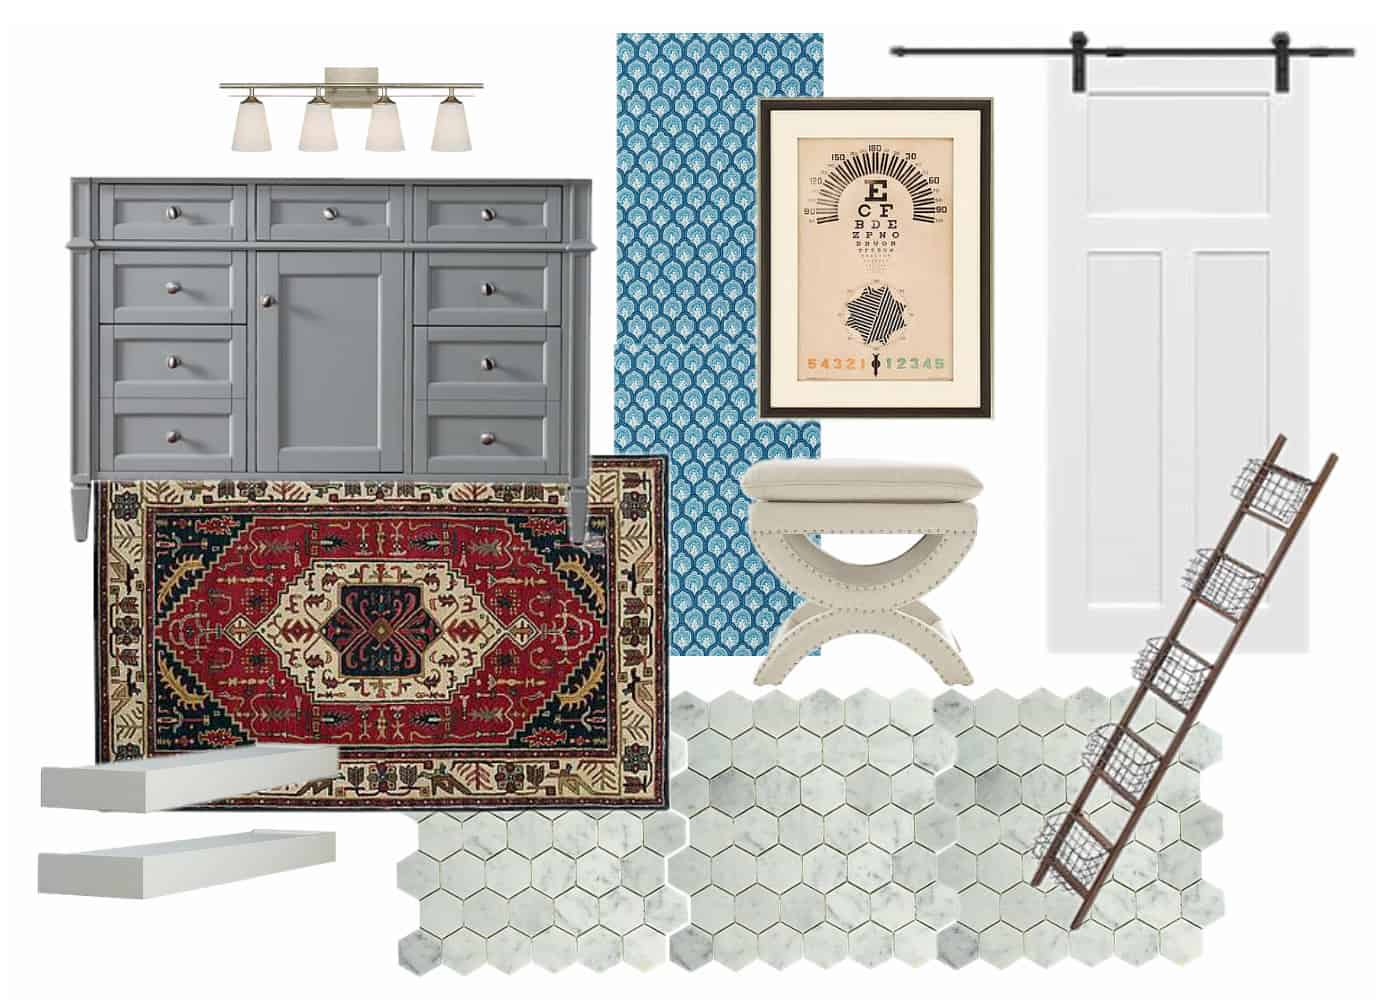 master bath vision board and plans